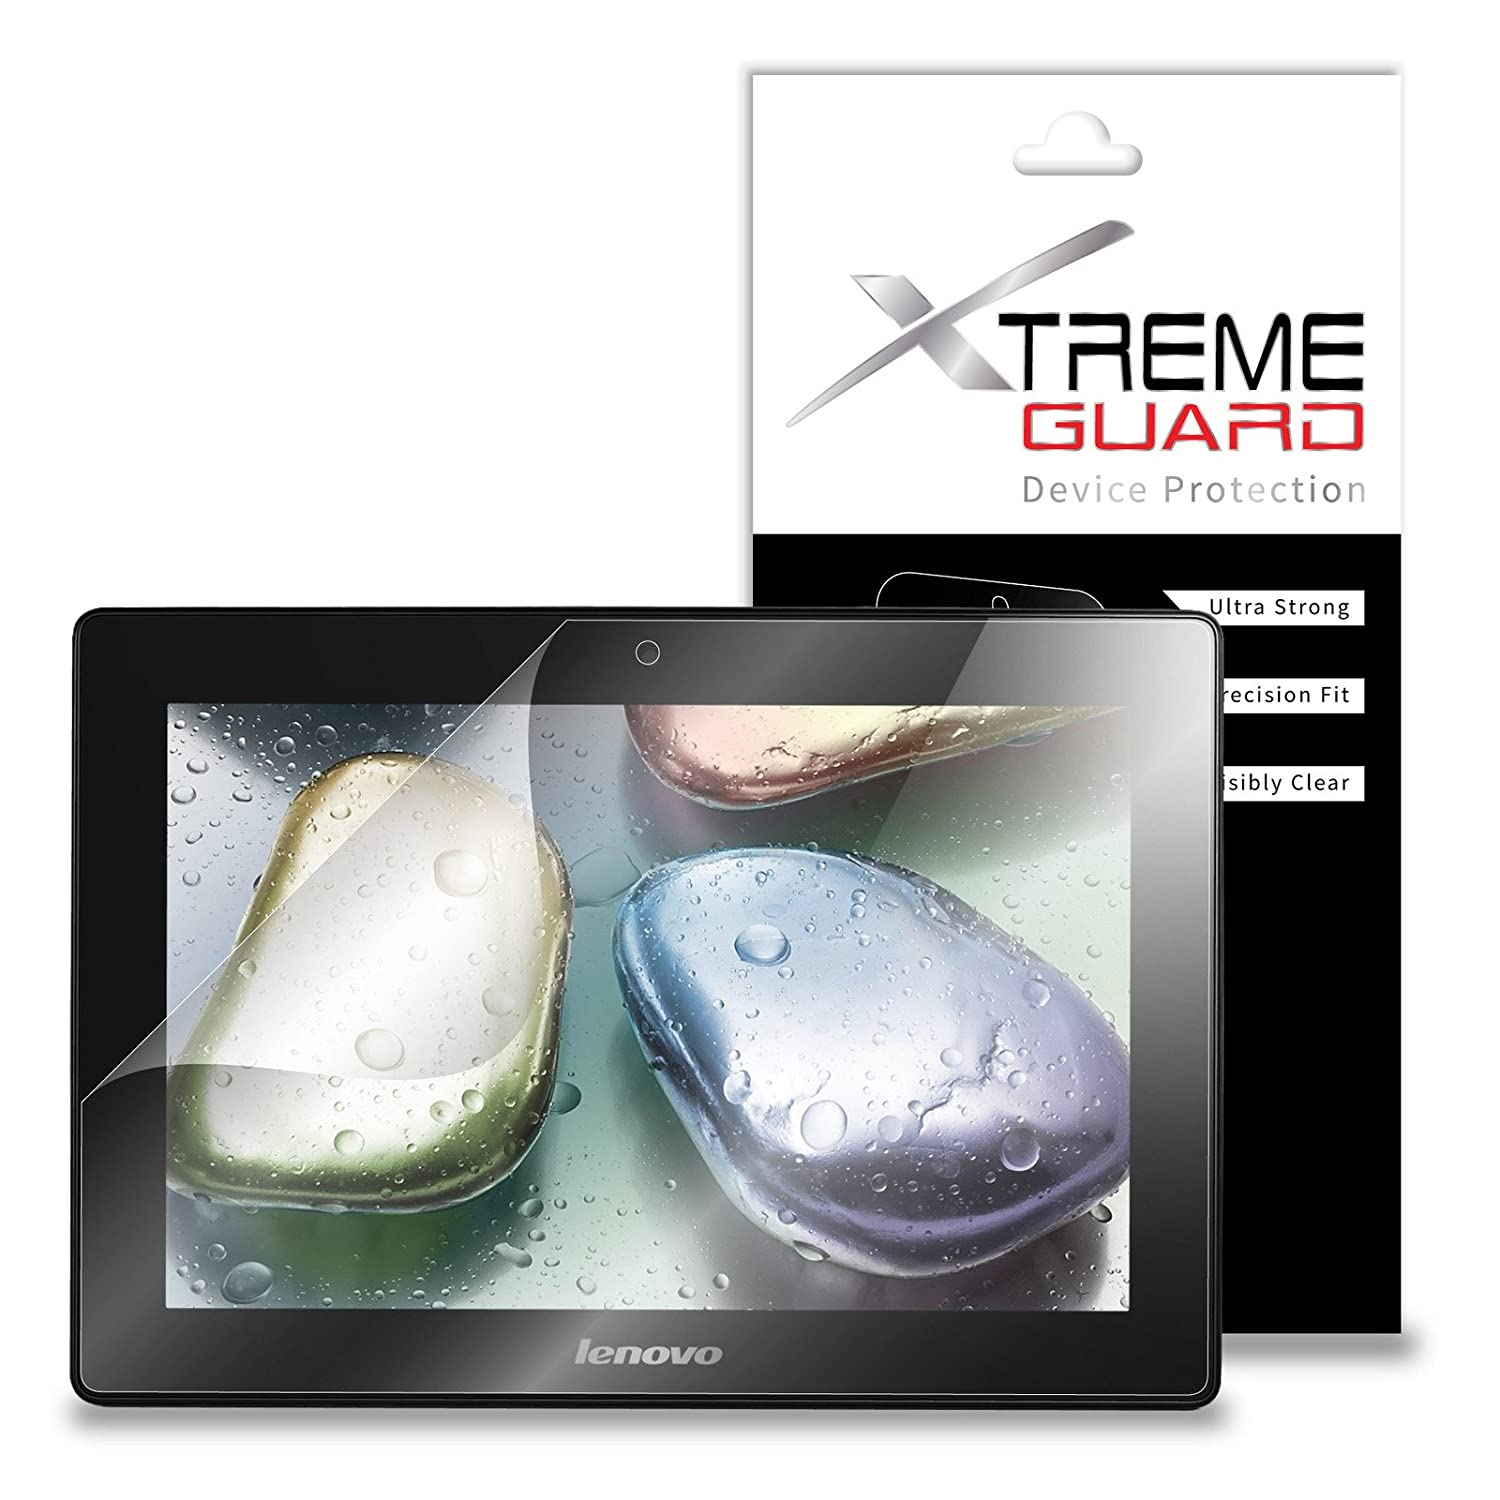 Amazon XtremeGuard™ Lenovo IdeaTab S6000 Tablet Screen Protector Ultra Clear puters & Accessories